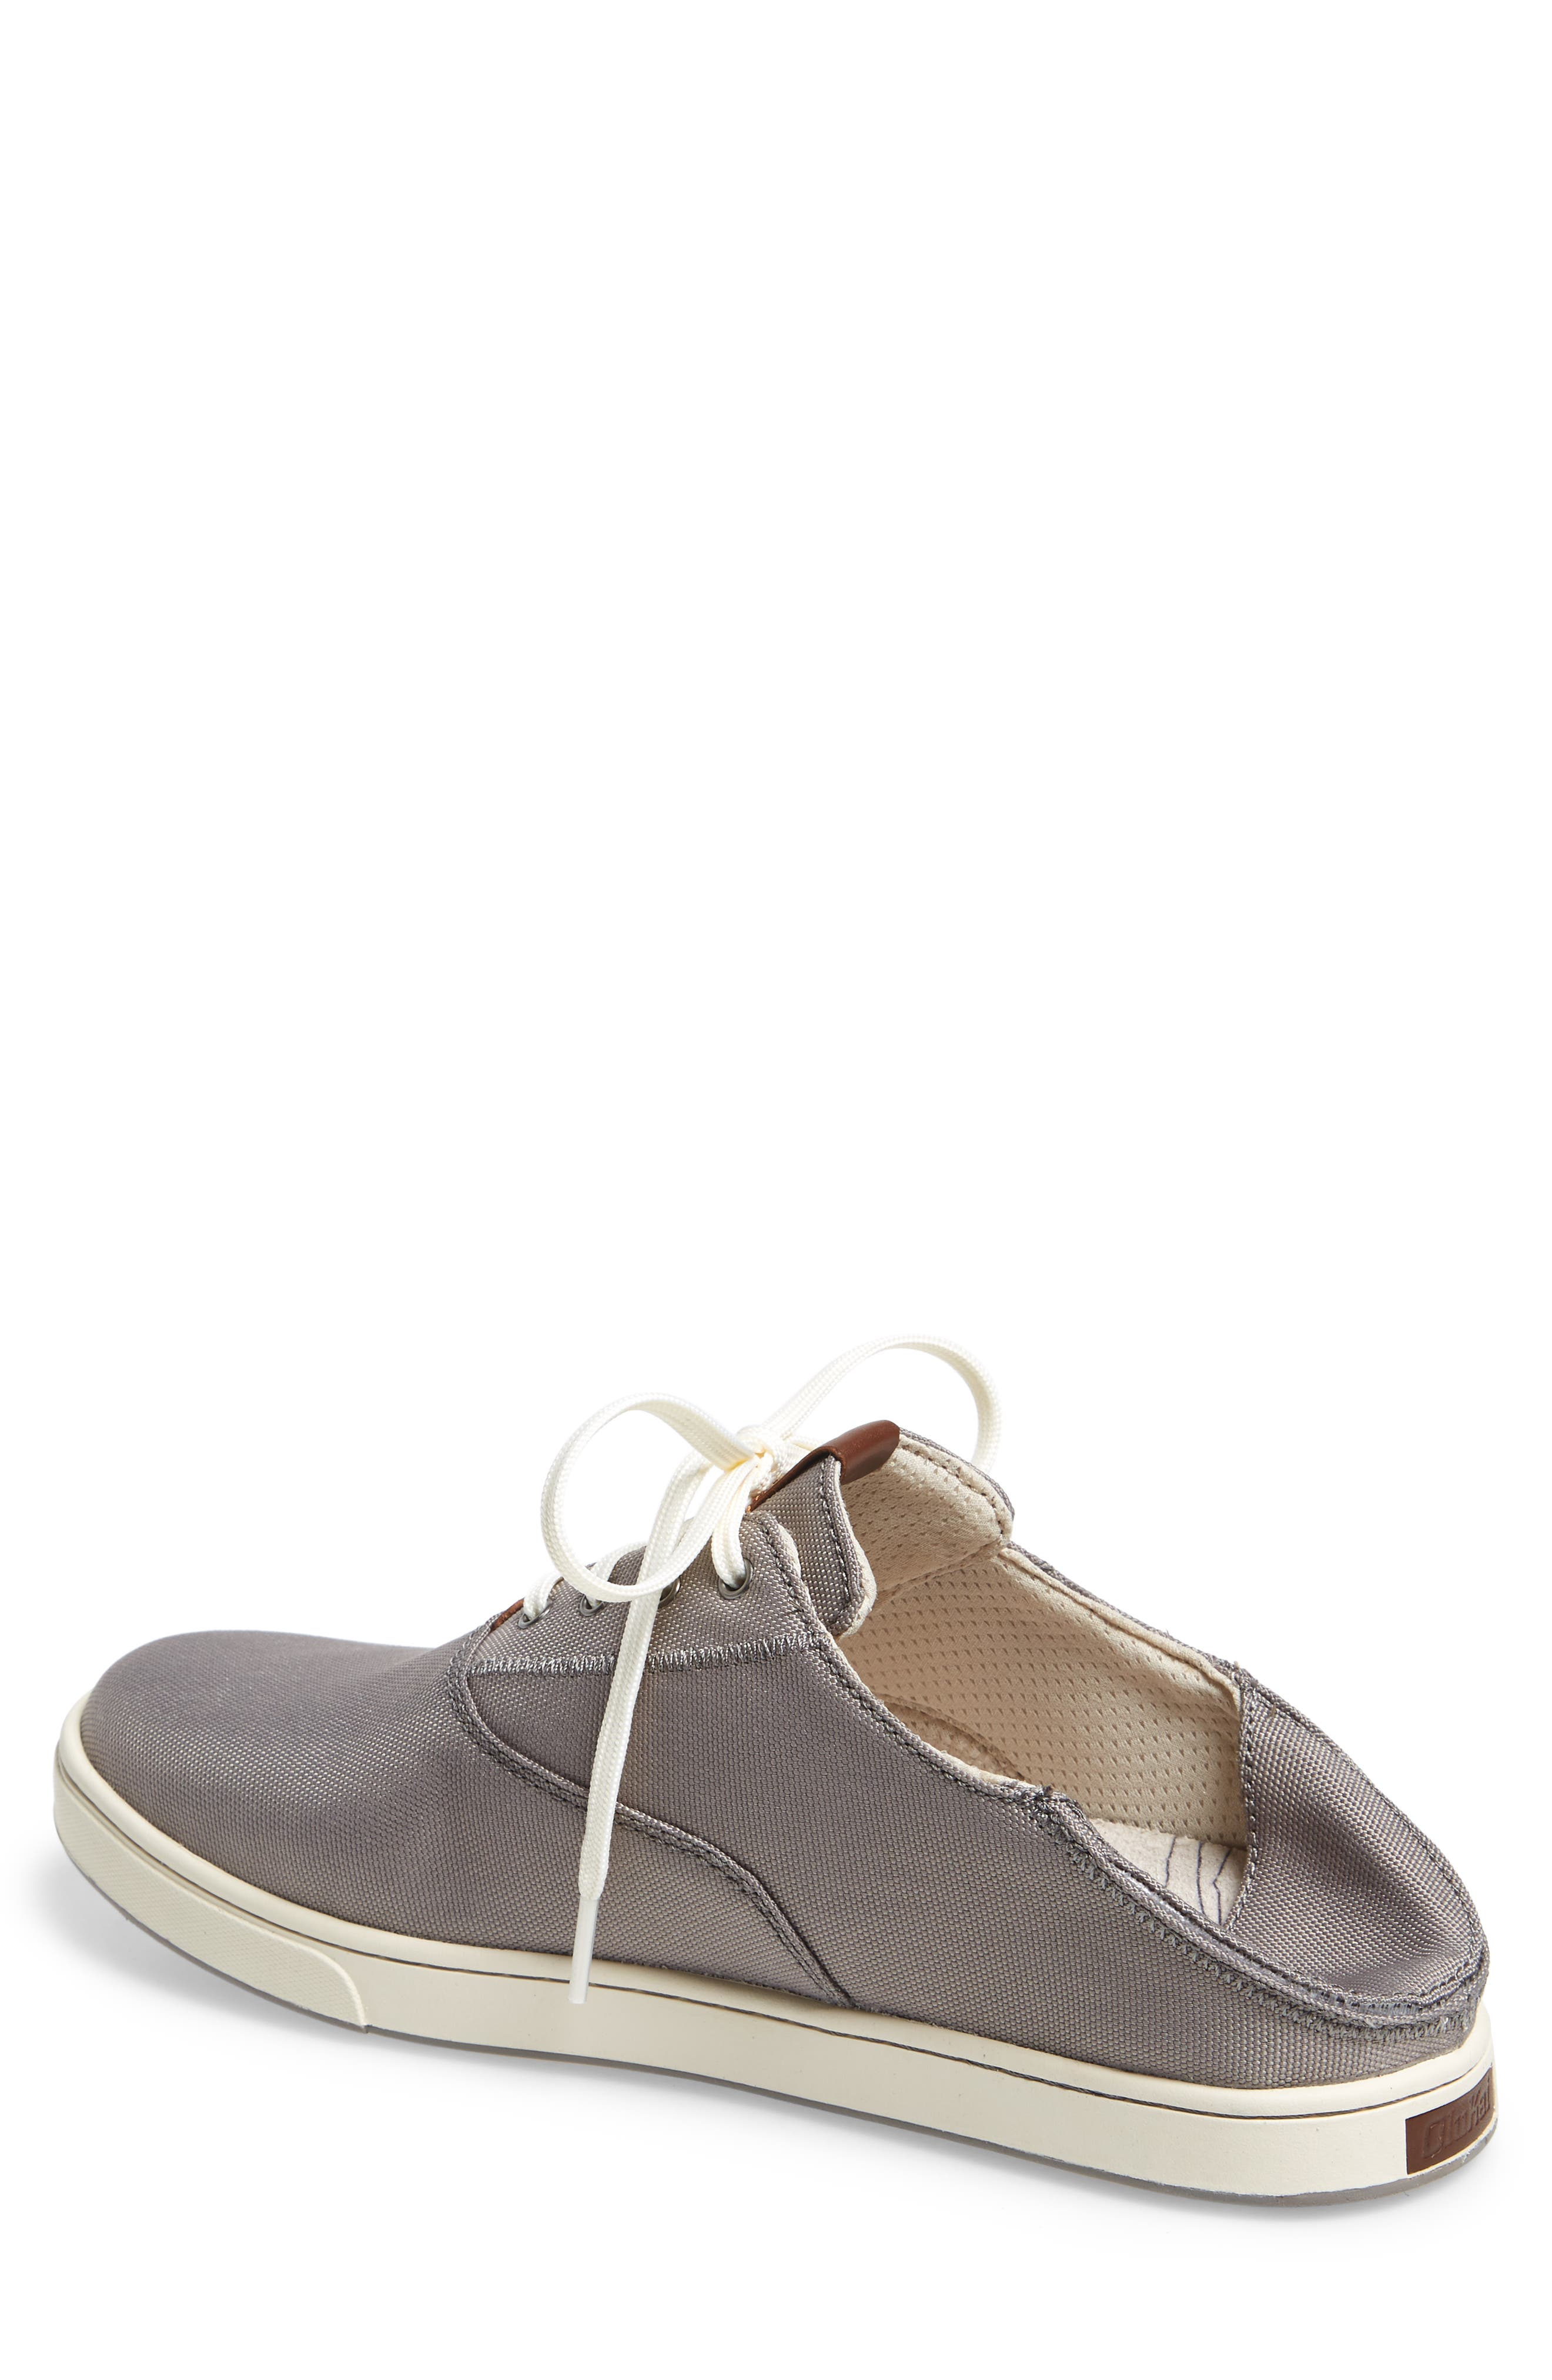 Kahu Collapsible Lace-Up Sneaker,                             Alternate thumbnail 2, color,                             Fog/ Off White